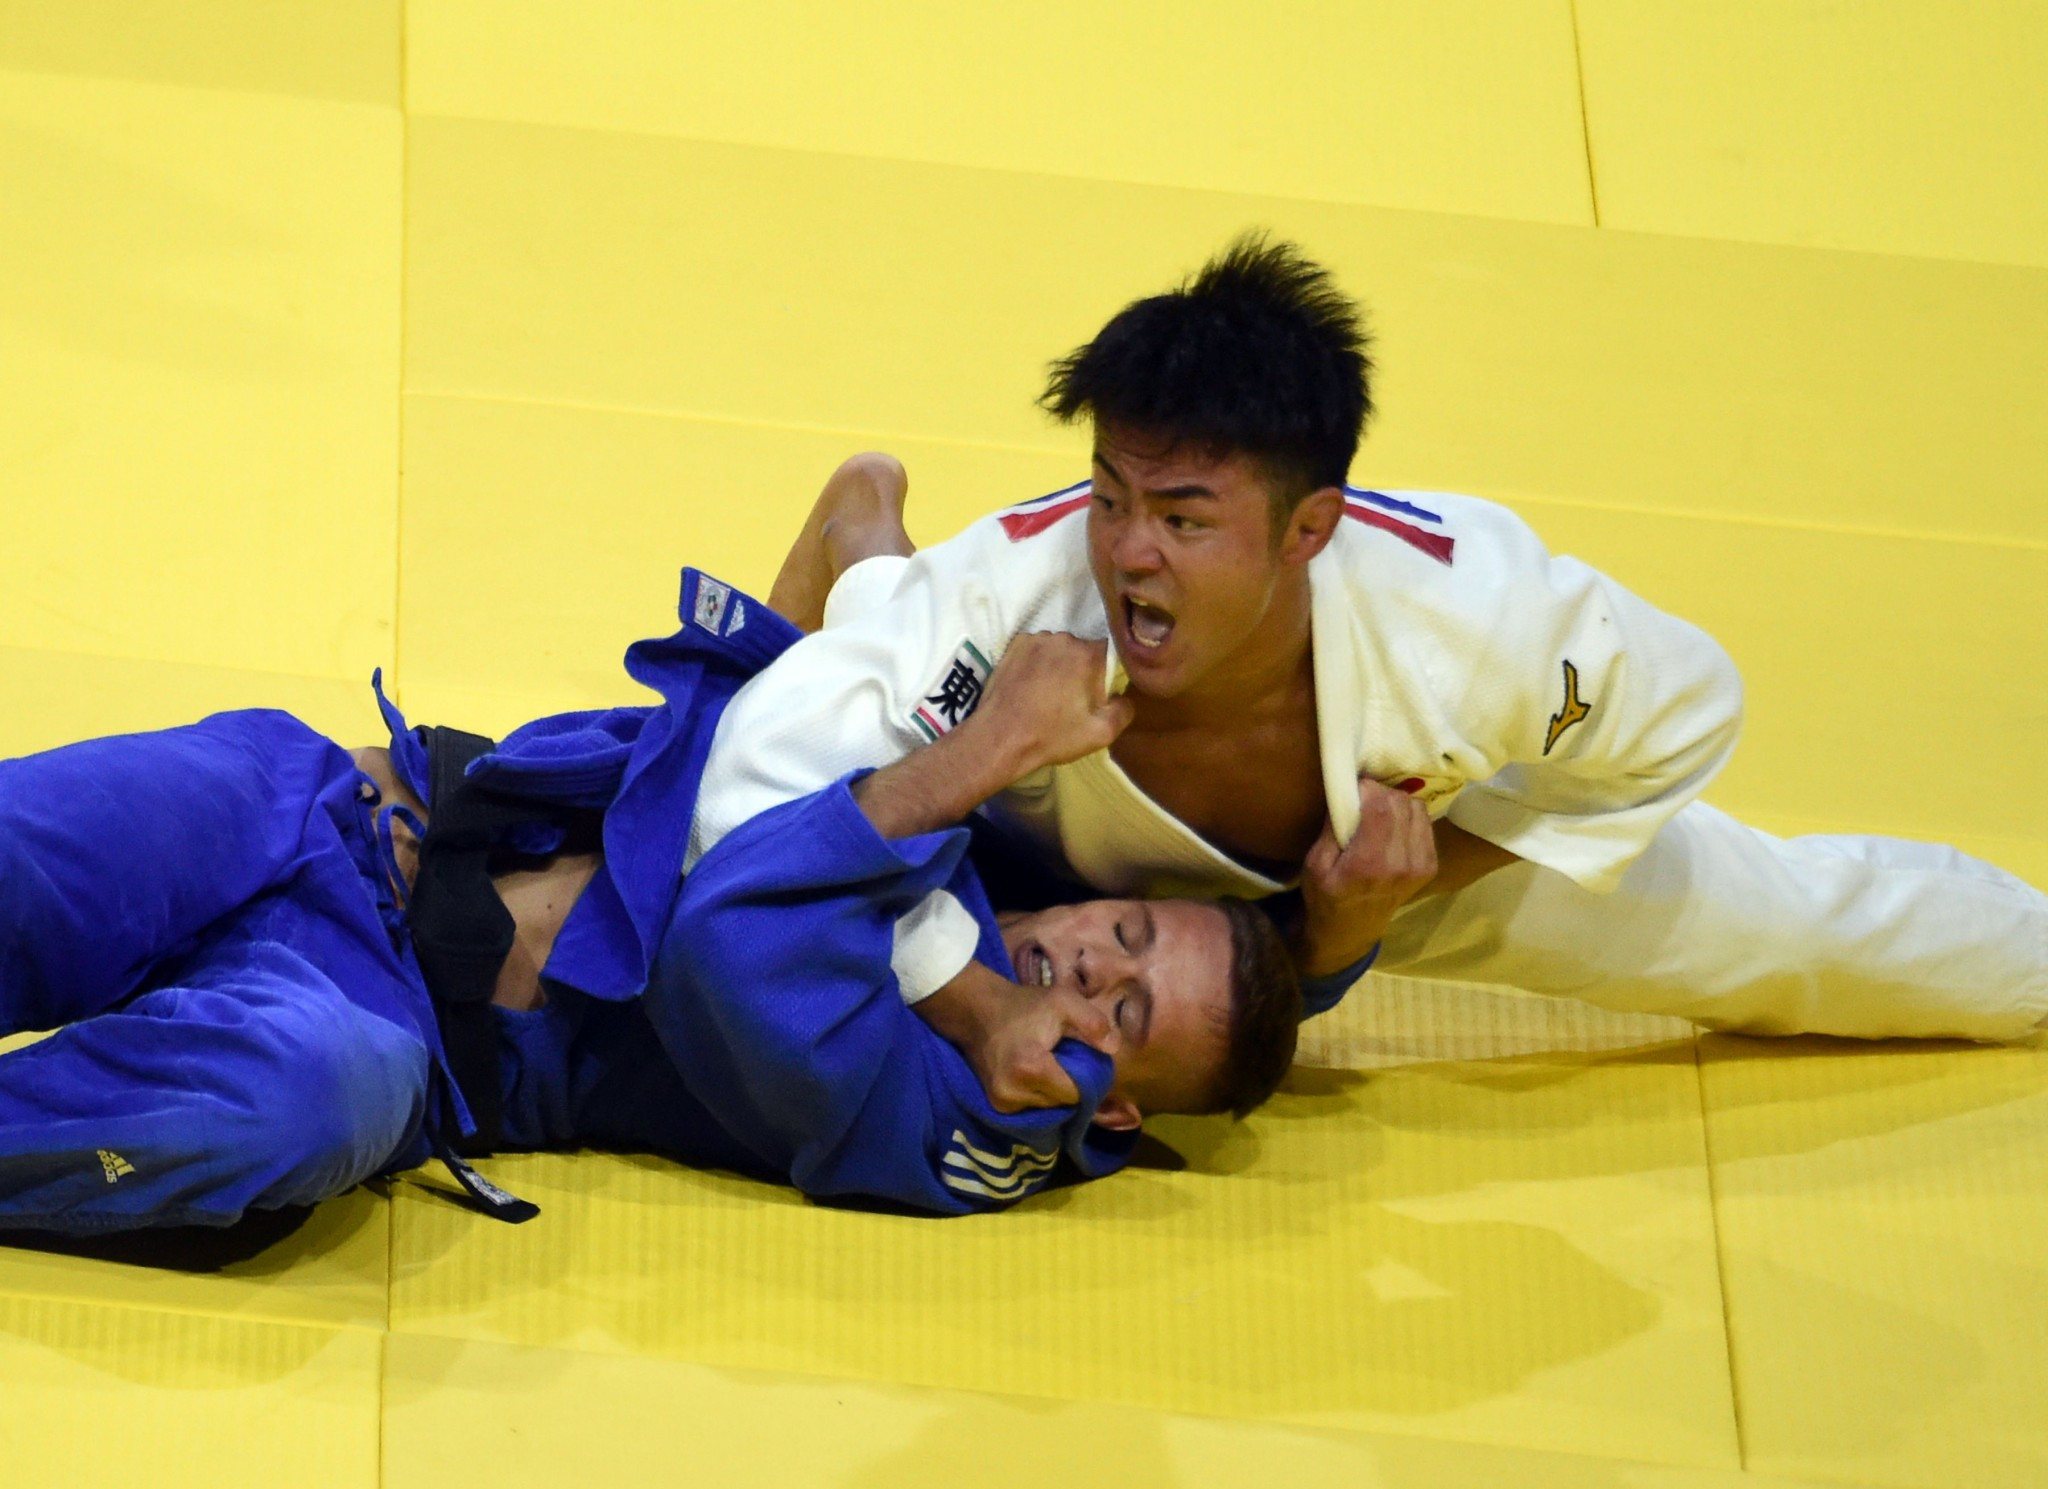 Eleven Sports hope the deal will help them tap into the market of judo fans ©Getty Images